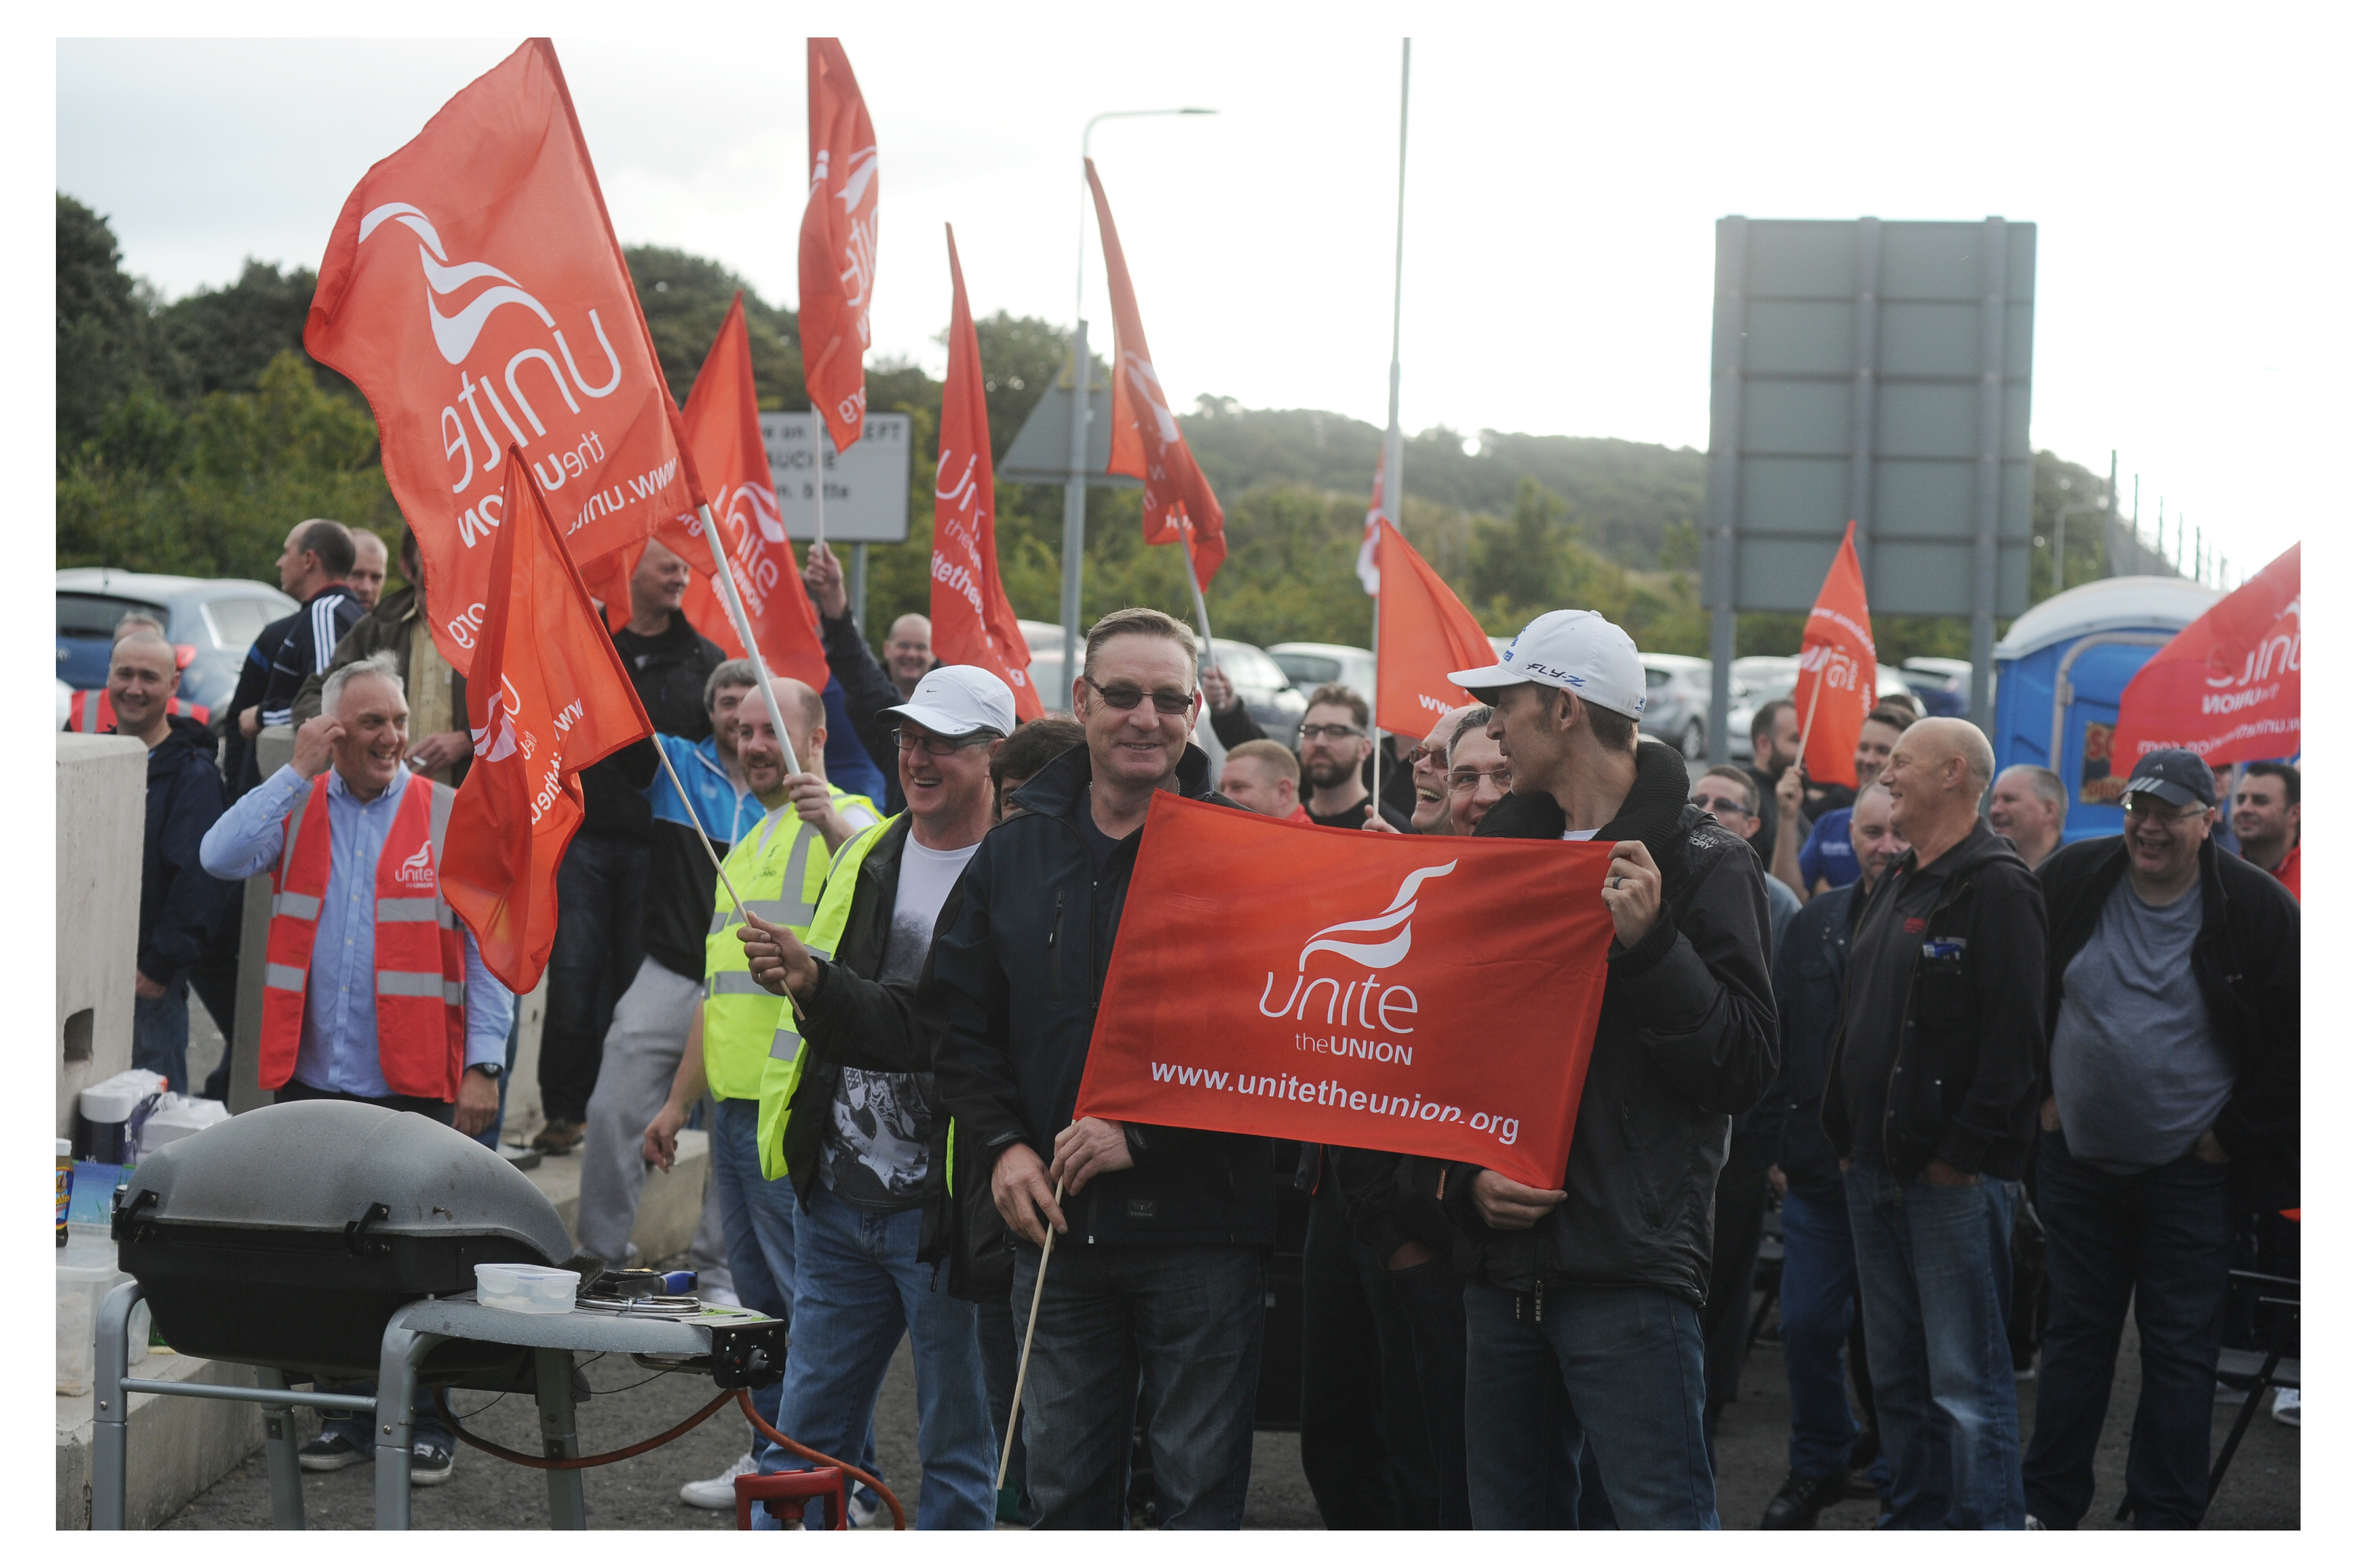 ROSYTH – Unite members at Oceaneering will be on the picket line. Strike action is over redundancy payments, which Unite says is the bare legal minimum. 6 Sept 16